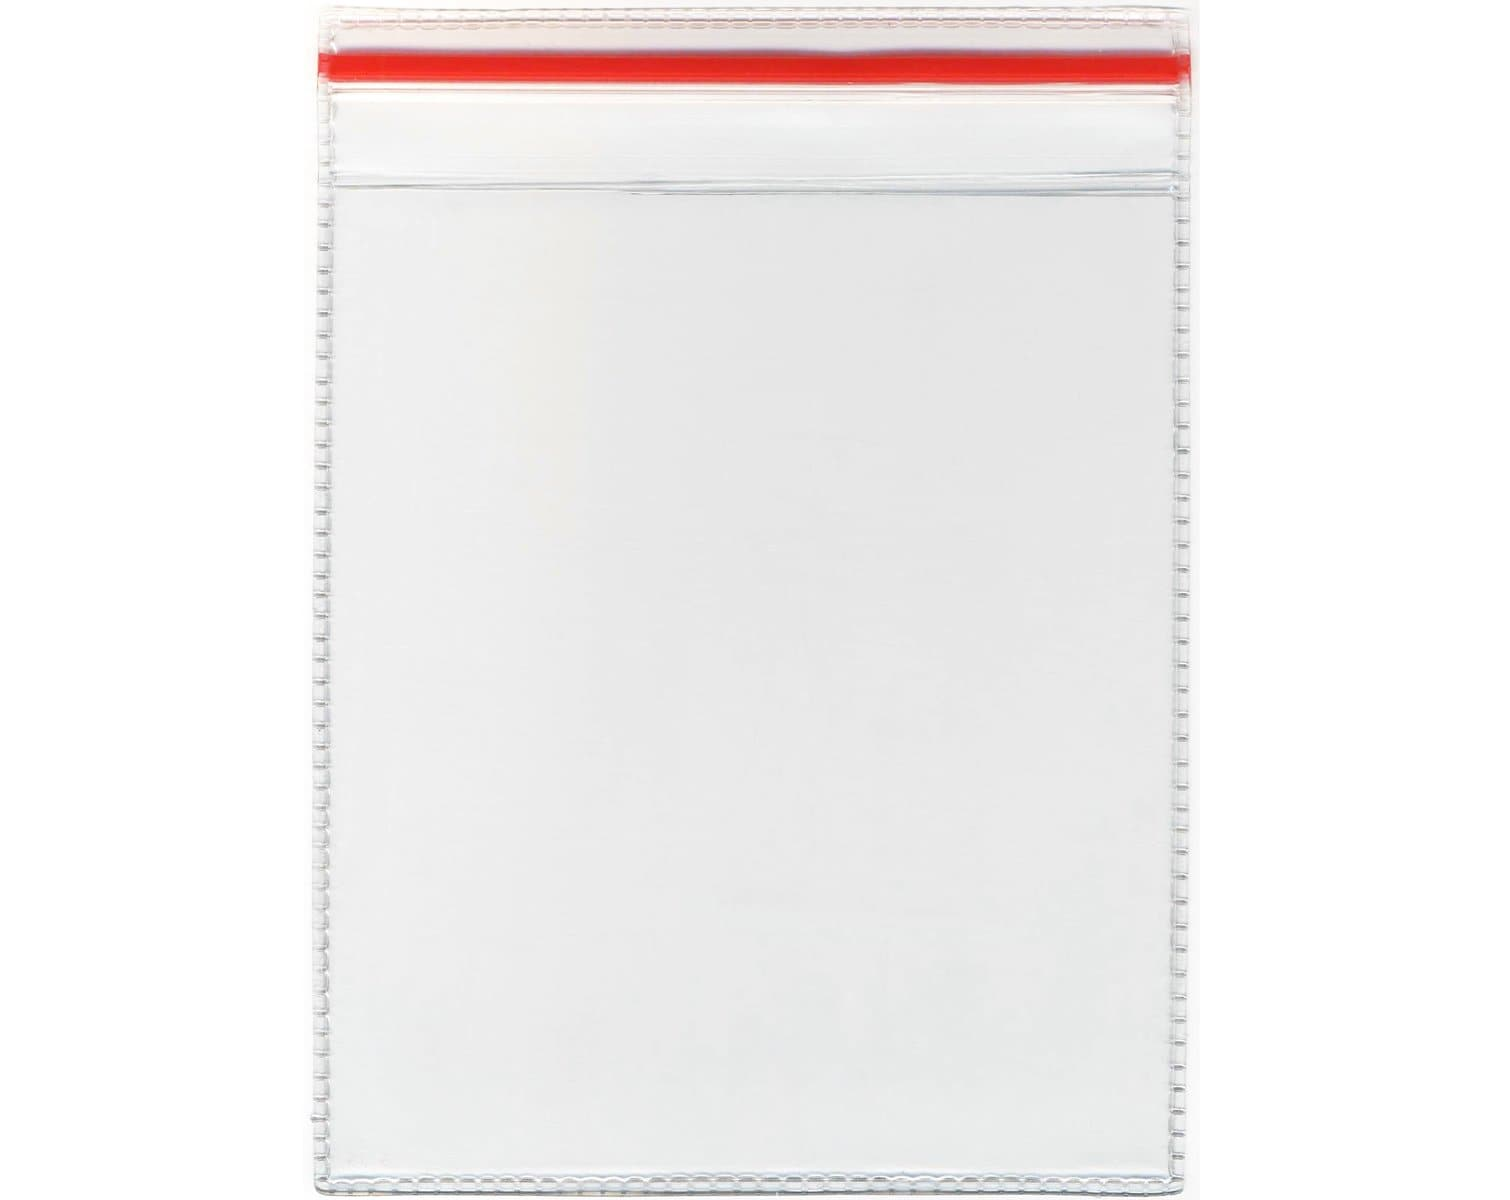 Plastic wallet to display a piece of equipment's inspection status.